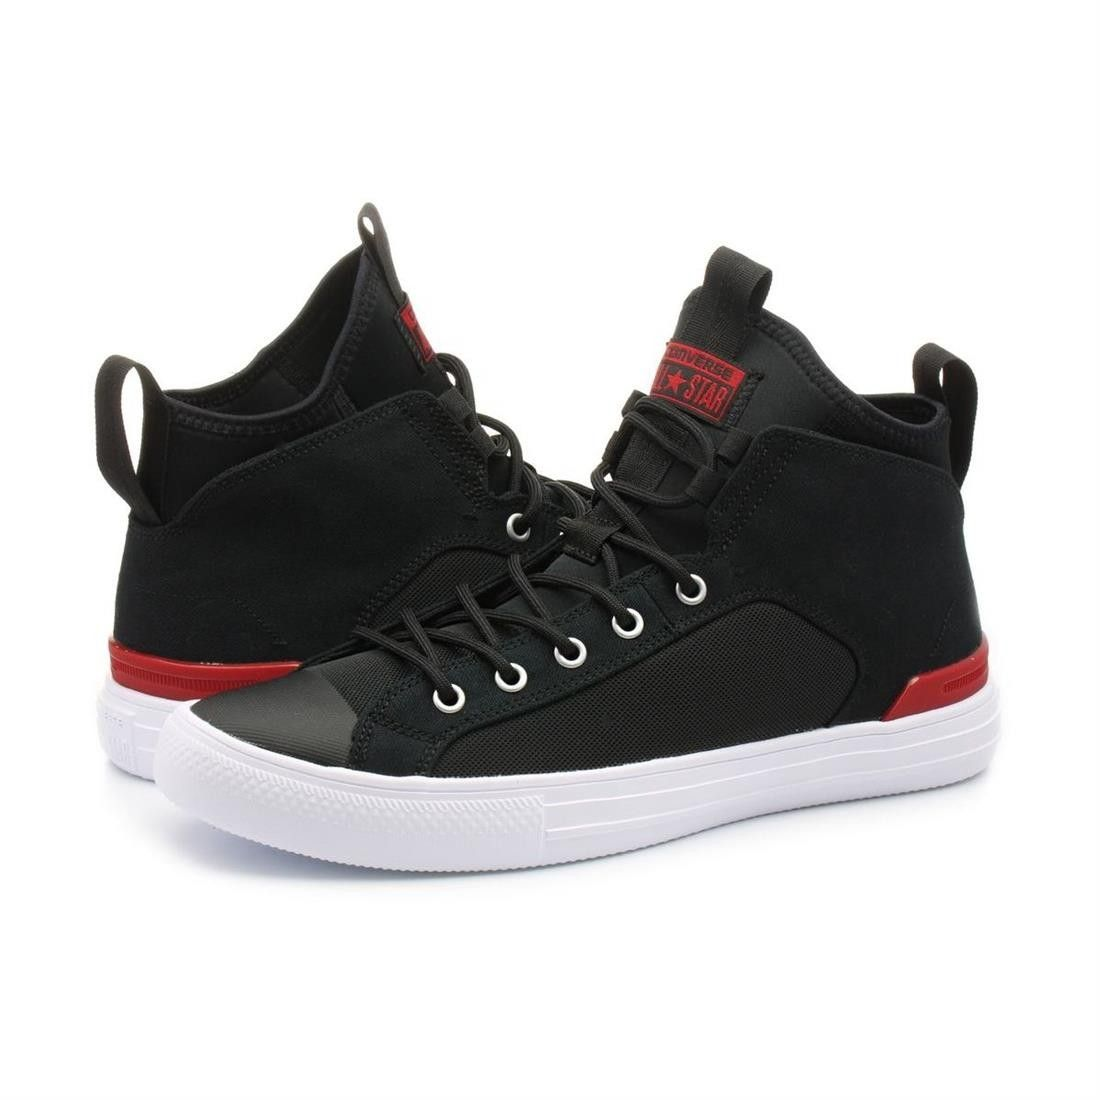 ctas ultra mid homme converse ctas ultra mid